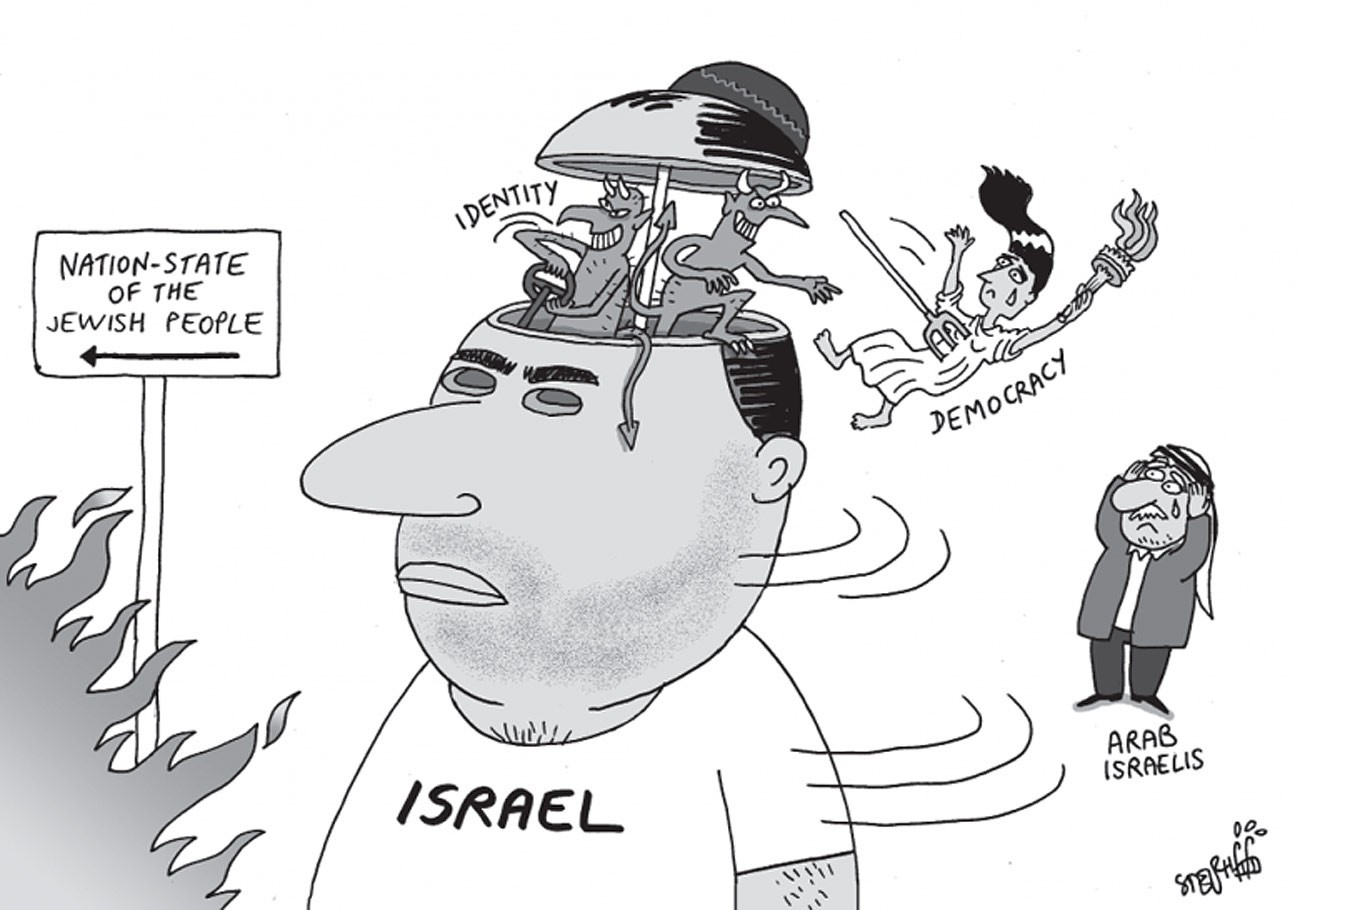 Myths and facts about Israel's controversial new nation-state law